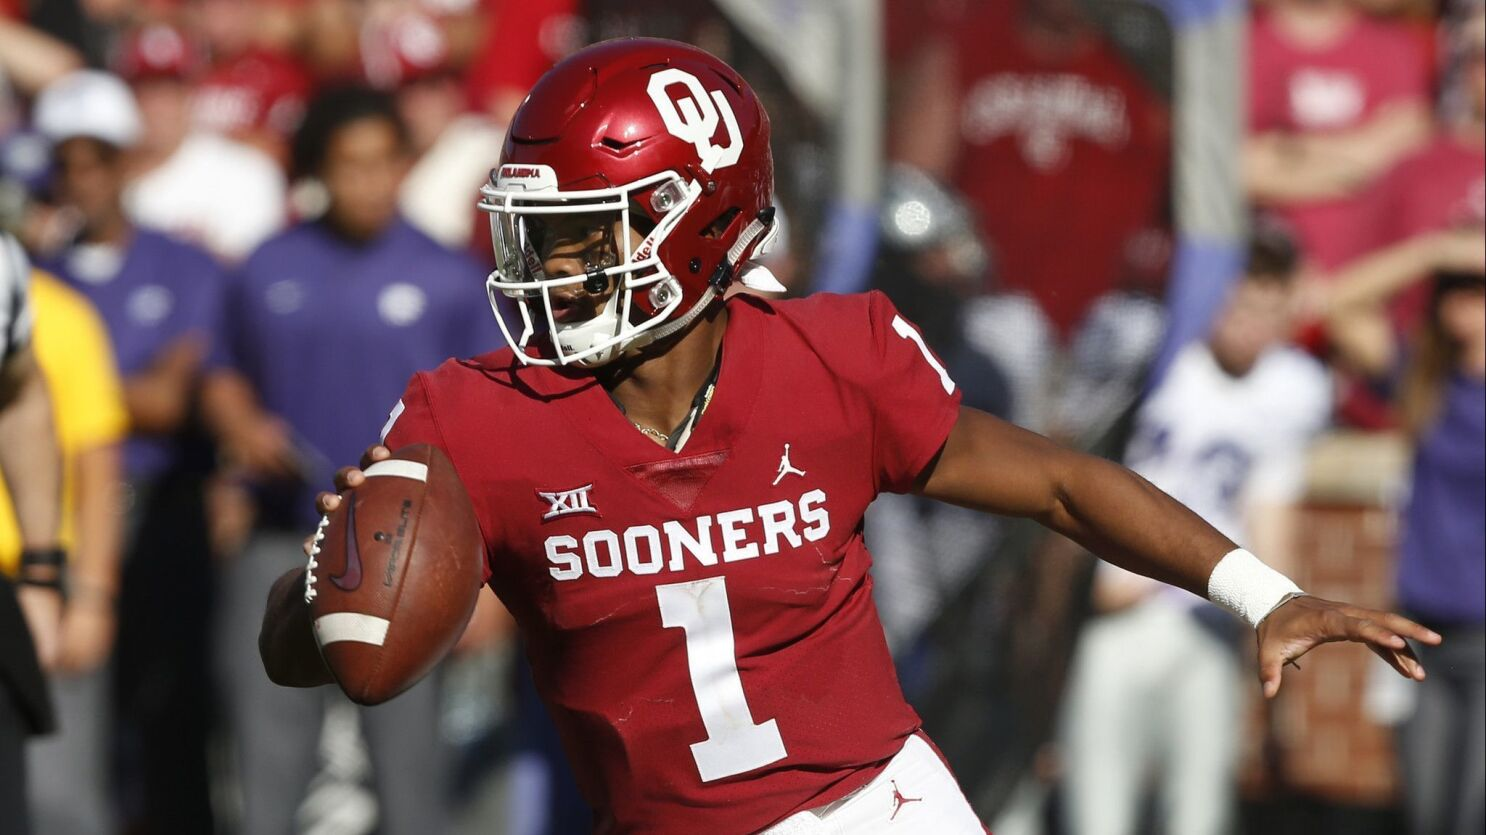 95ddca6a9 What will happen in first round of 2019 NFL Draft? - The San Diego  Union-Tribune